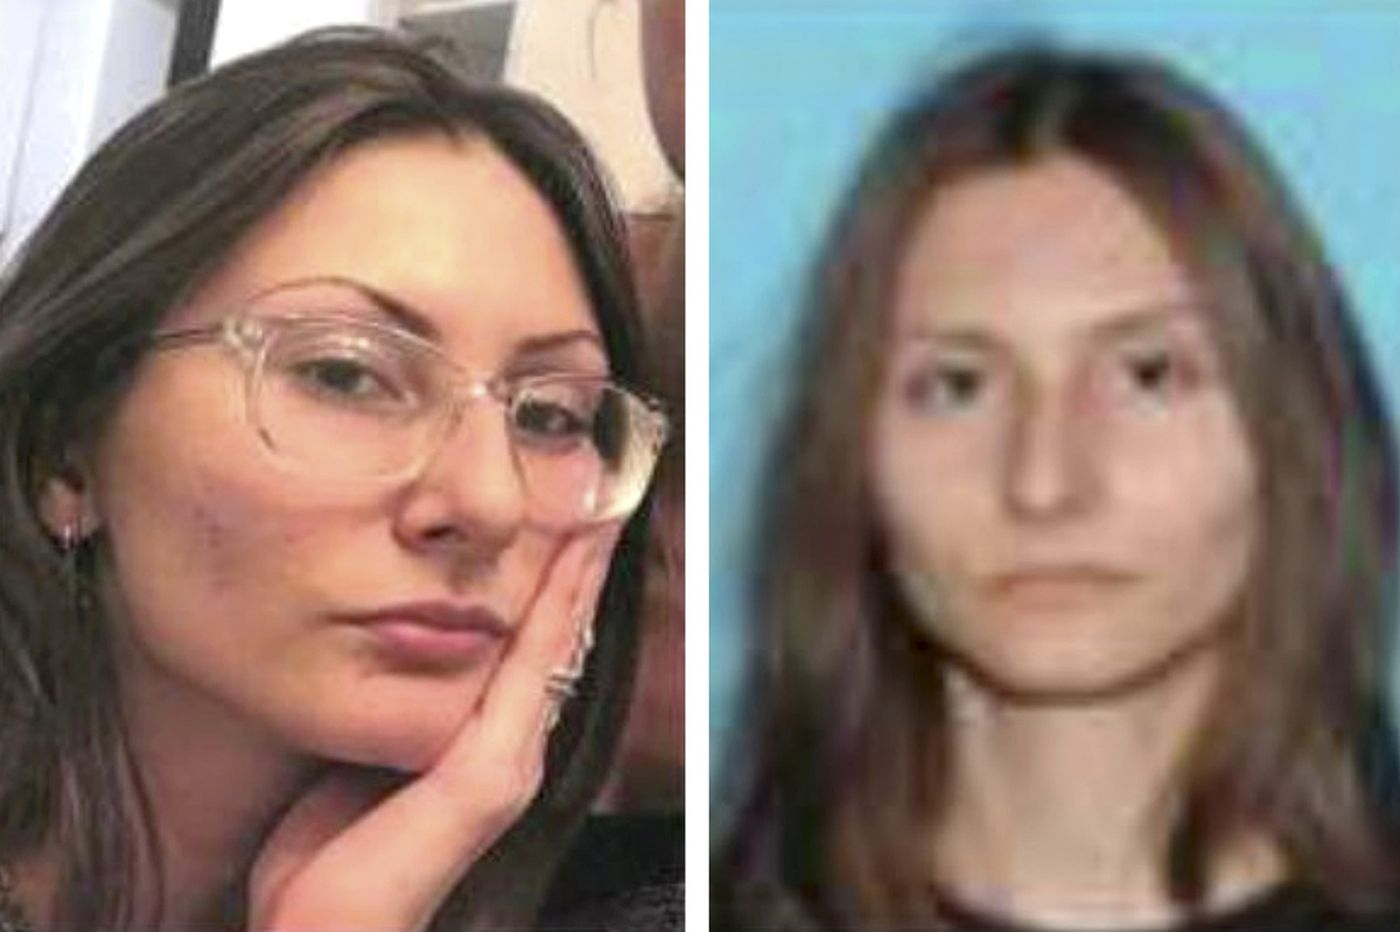 South Florida woman 'infatuated' with Columbine is found dead